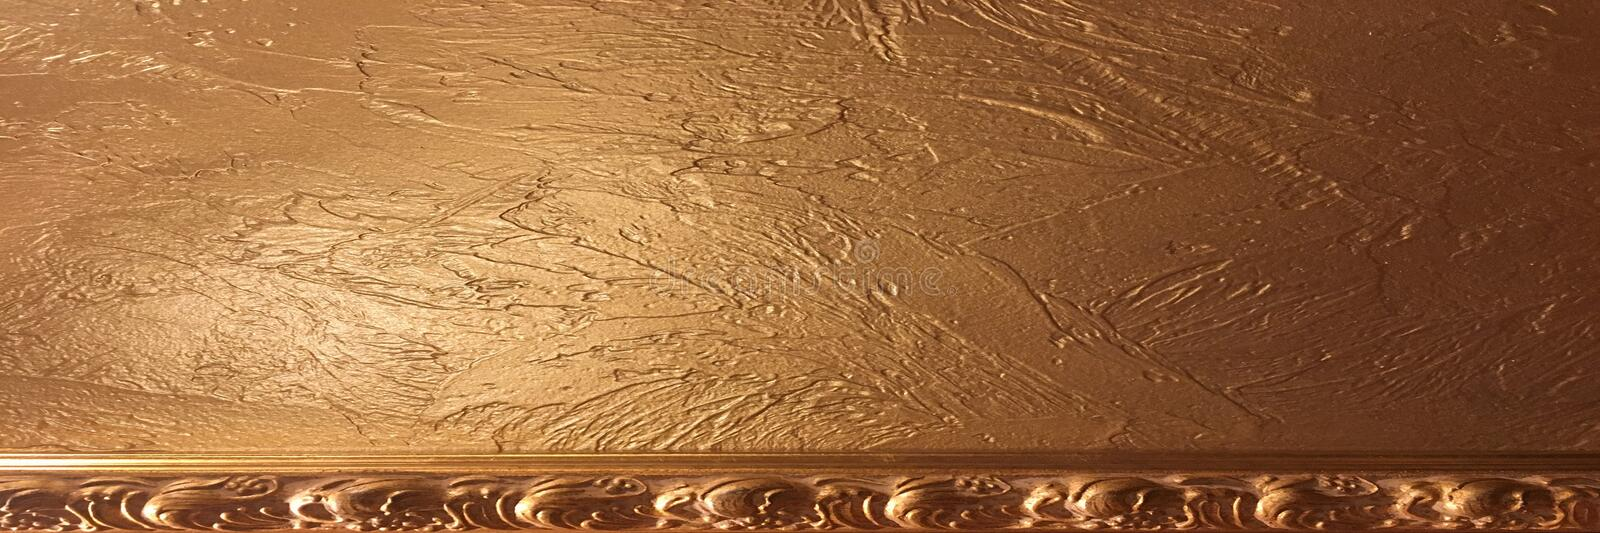 Gold background paper, texture is old vintage distressed solid glitter gold color with rough peeling grunge paint on edges. Gold background paper, texture is stock image